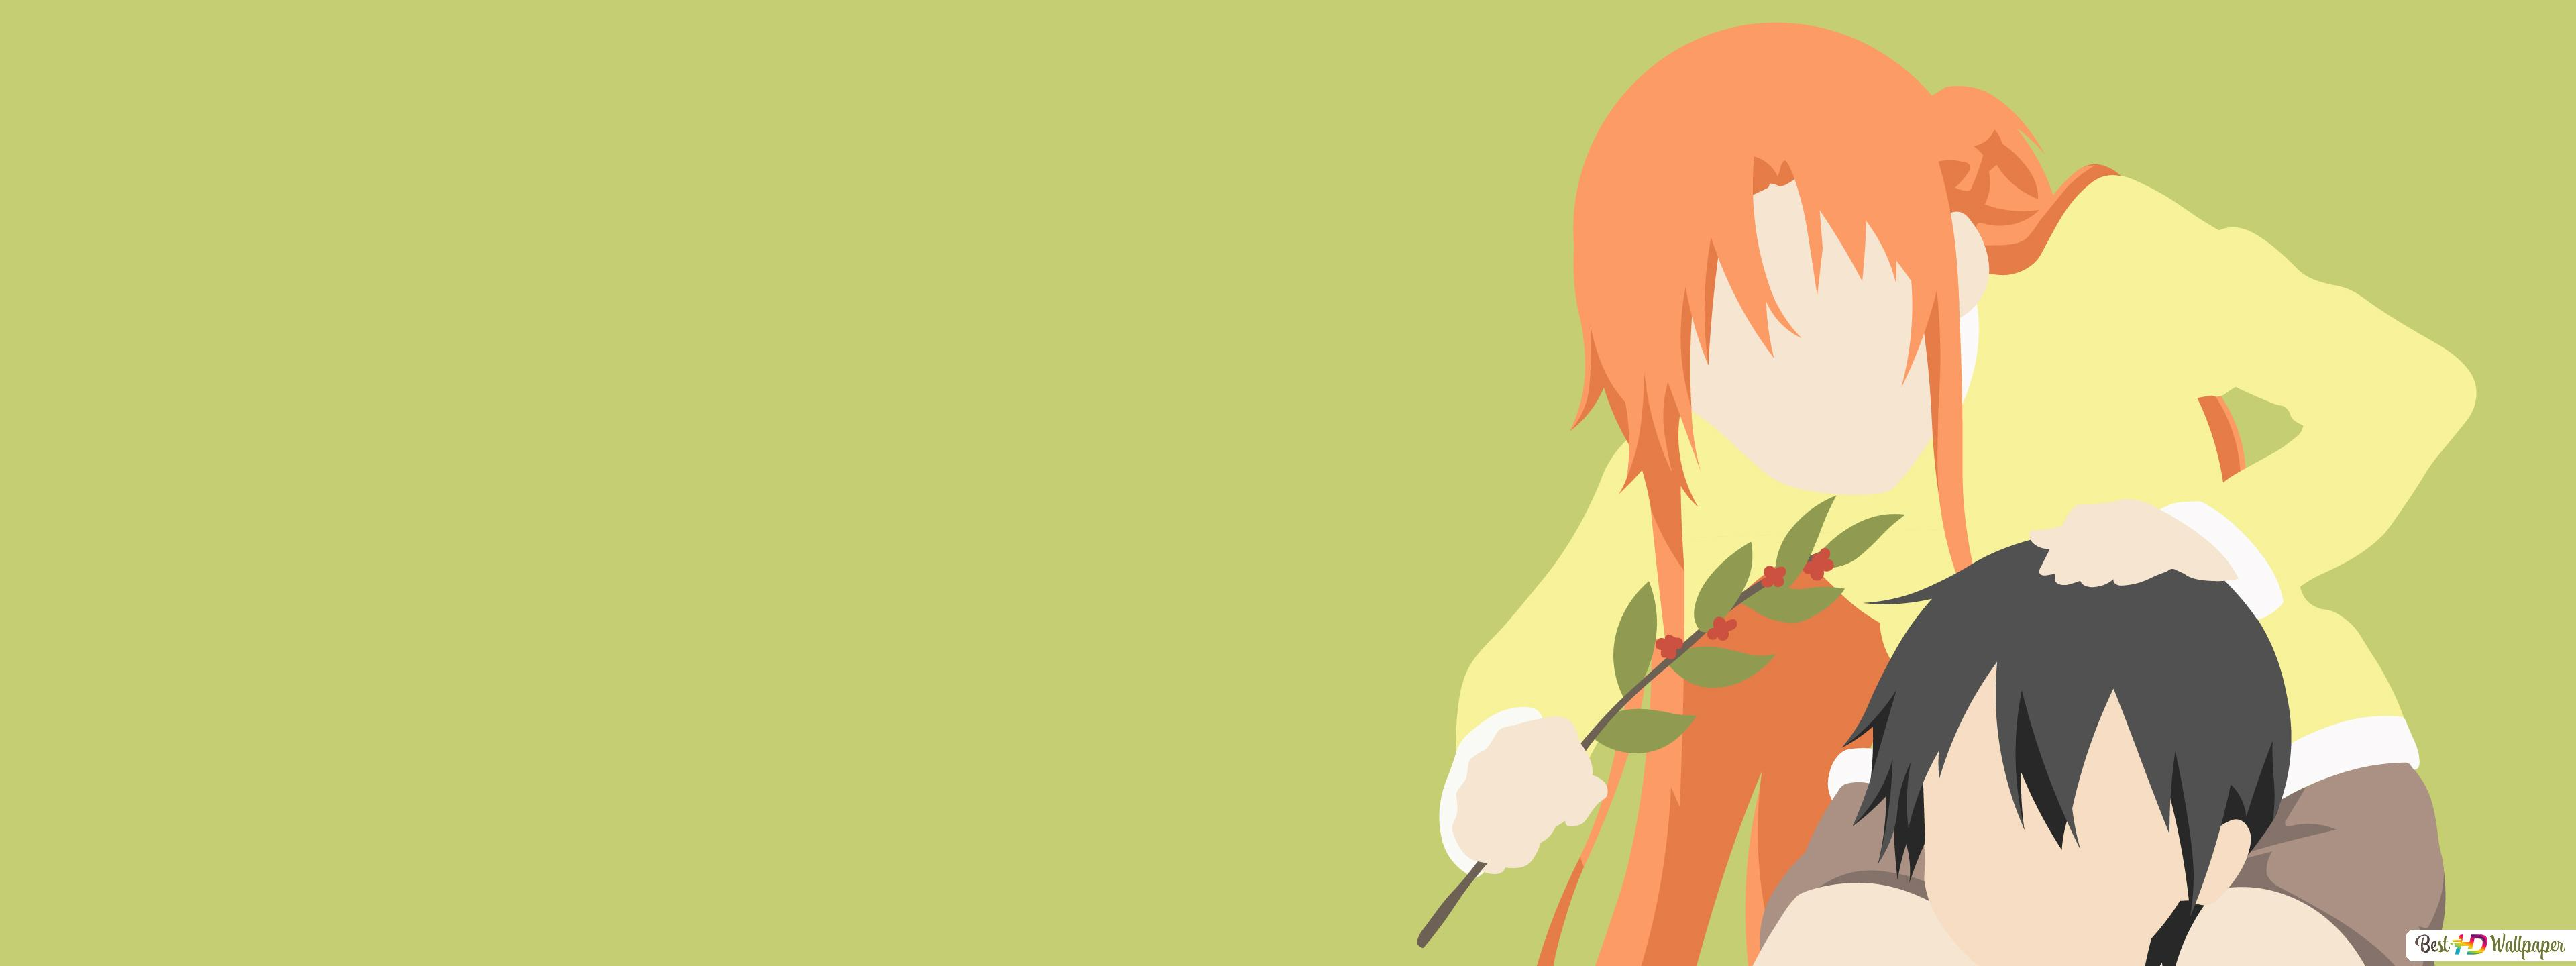 Asuna Yuuki And Kazuto Kirigaya HD Wallpaper Download